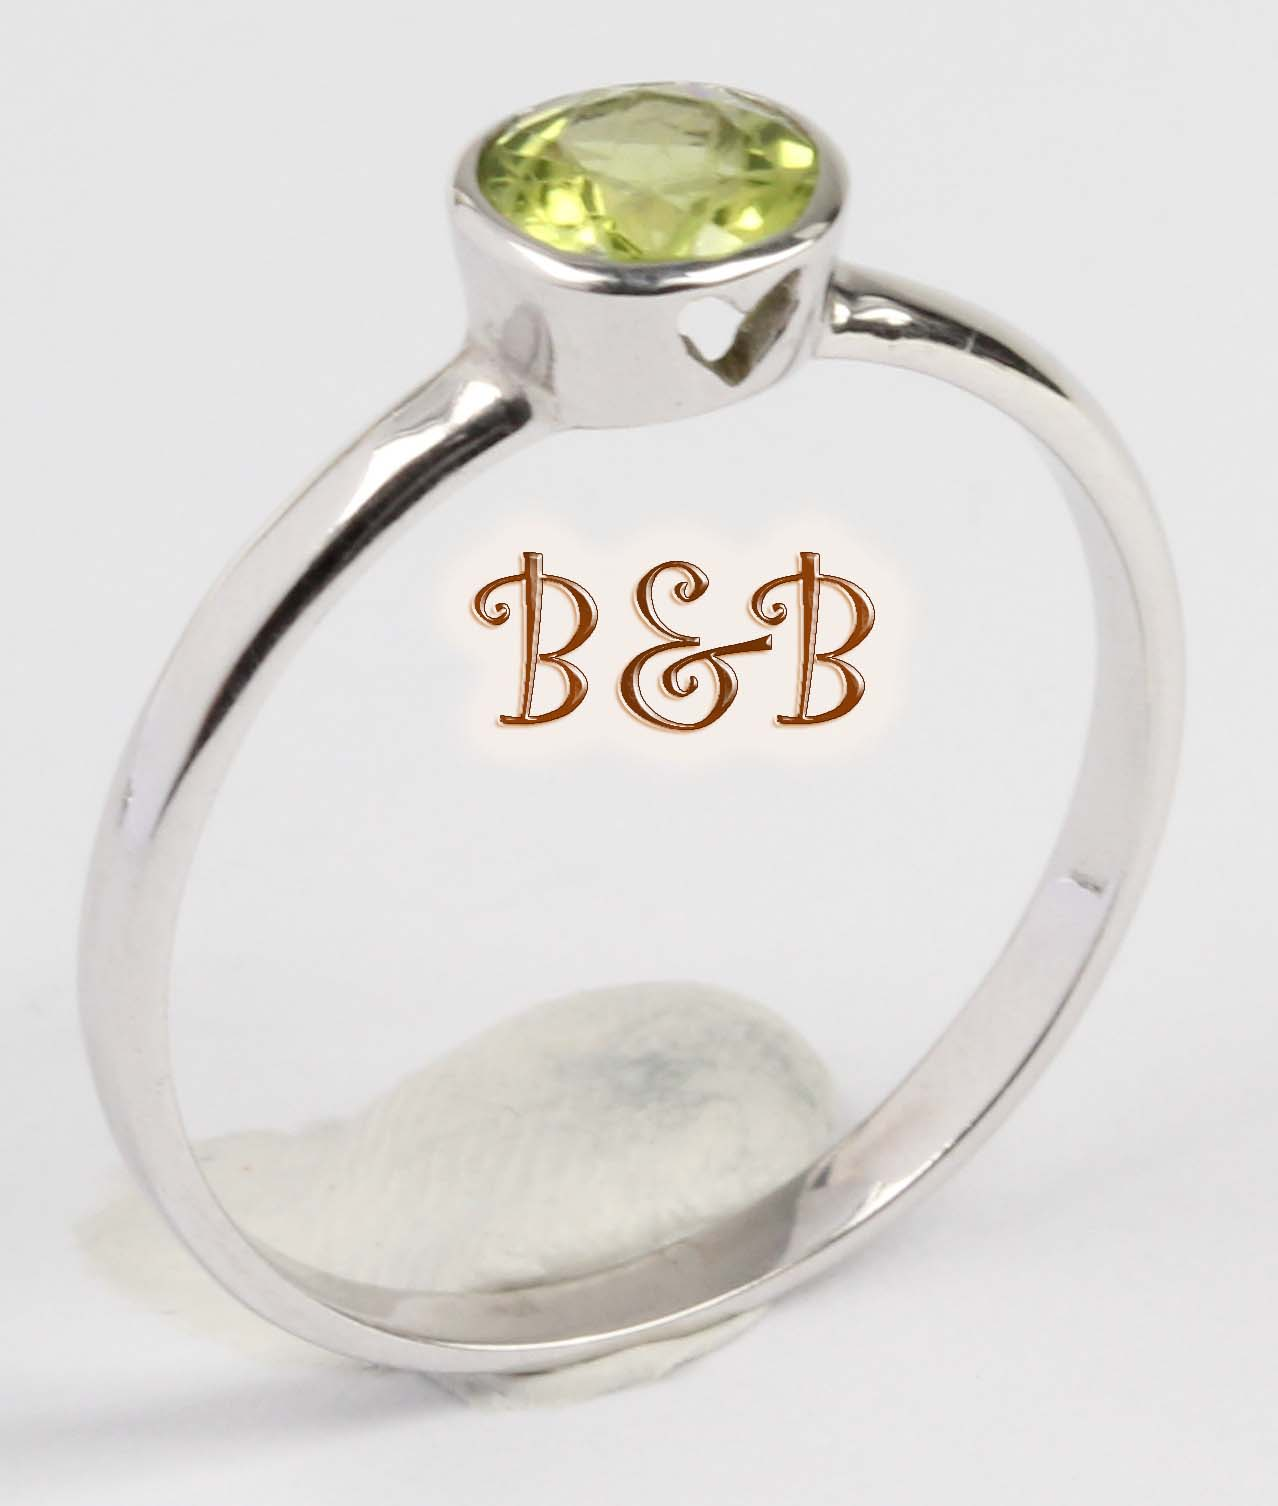 Silver ring_bb11.1